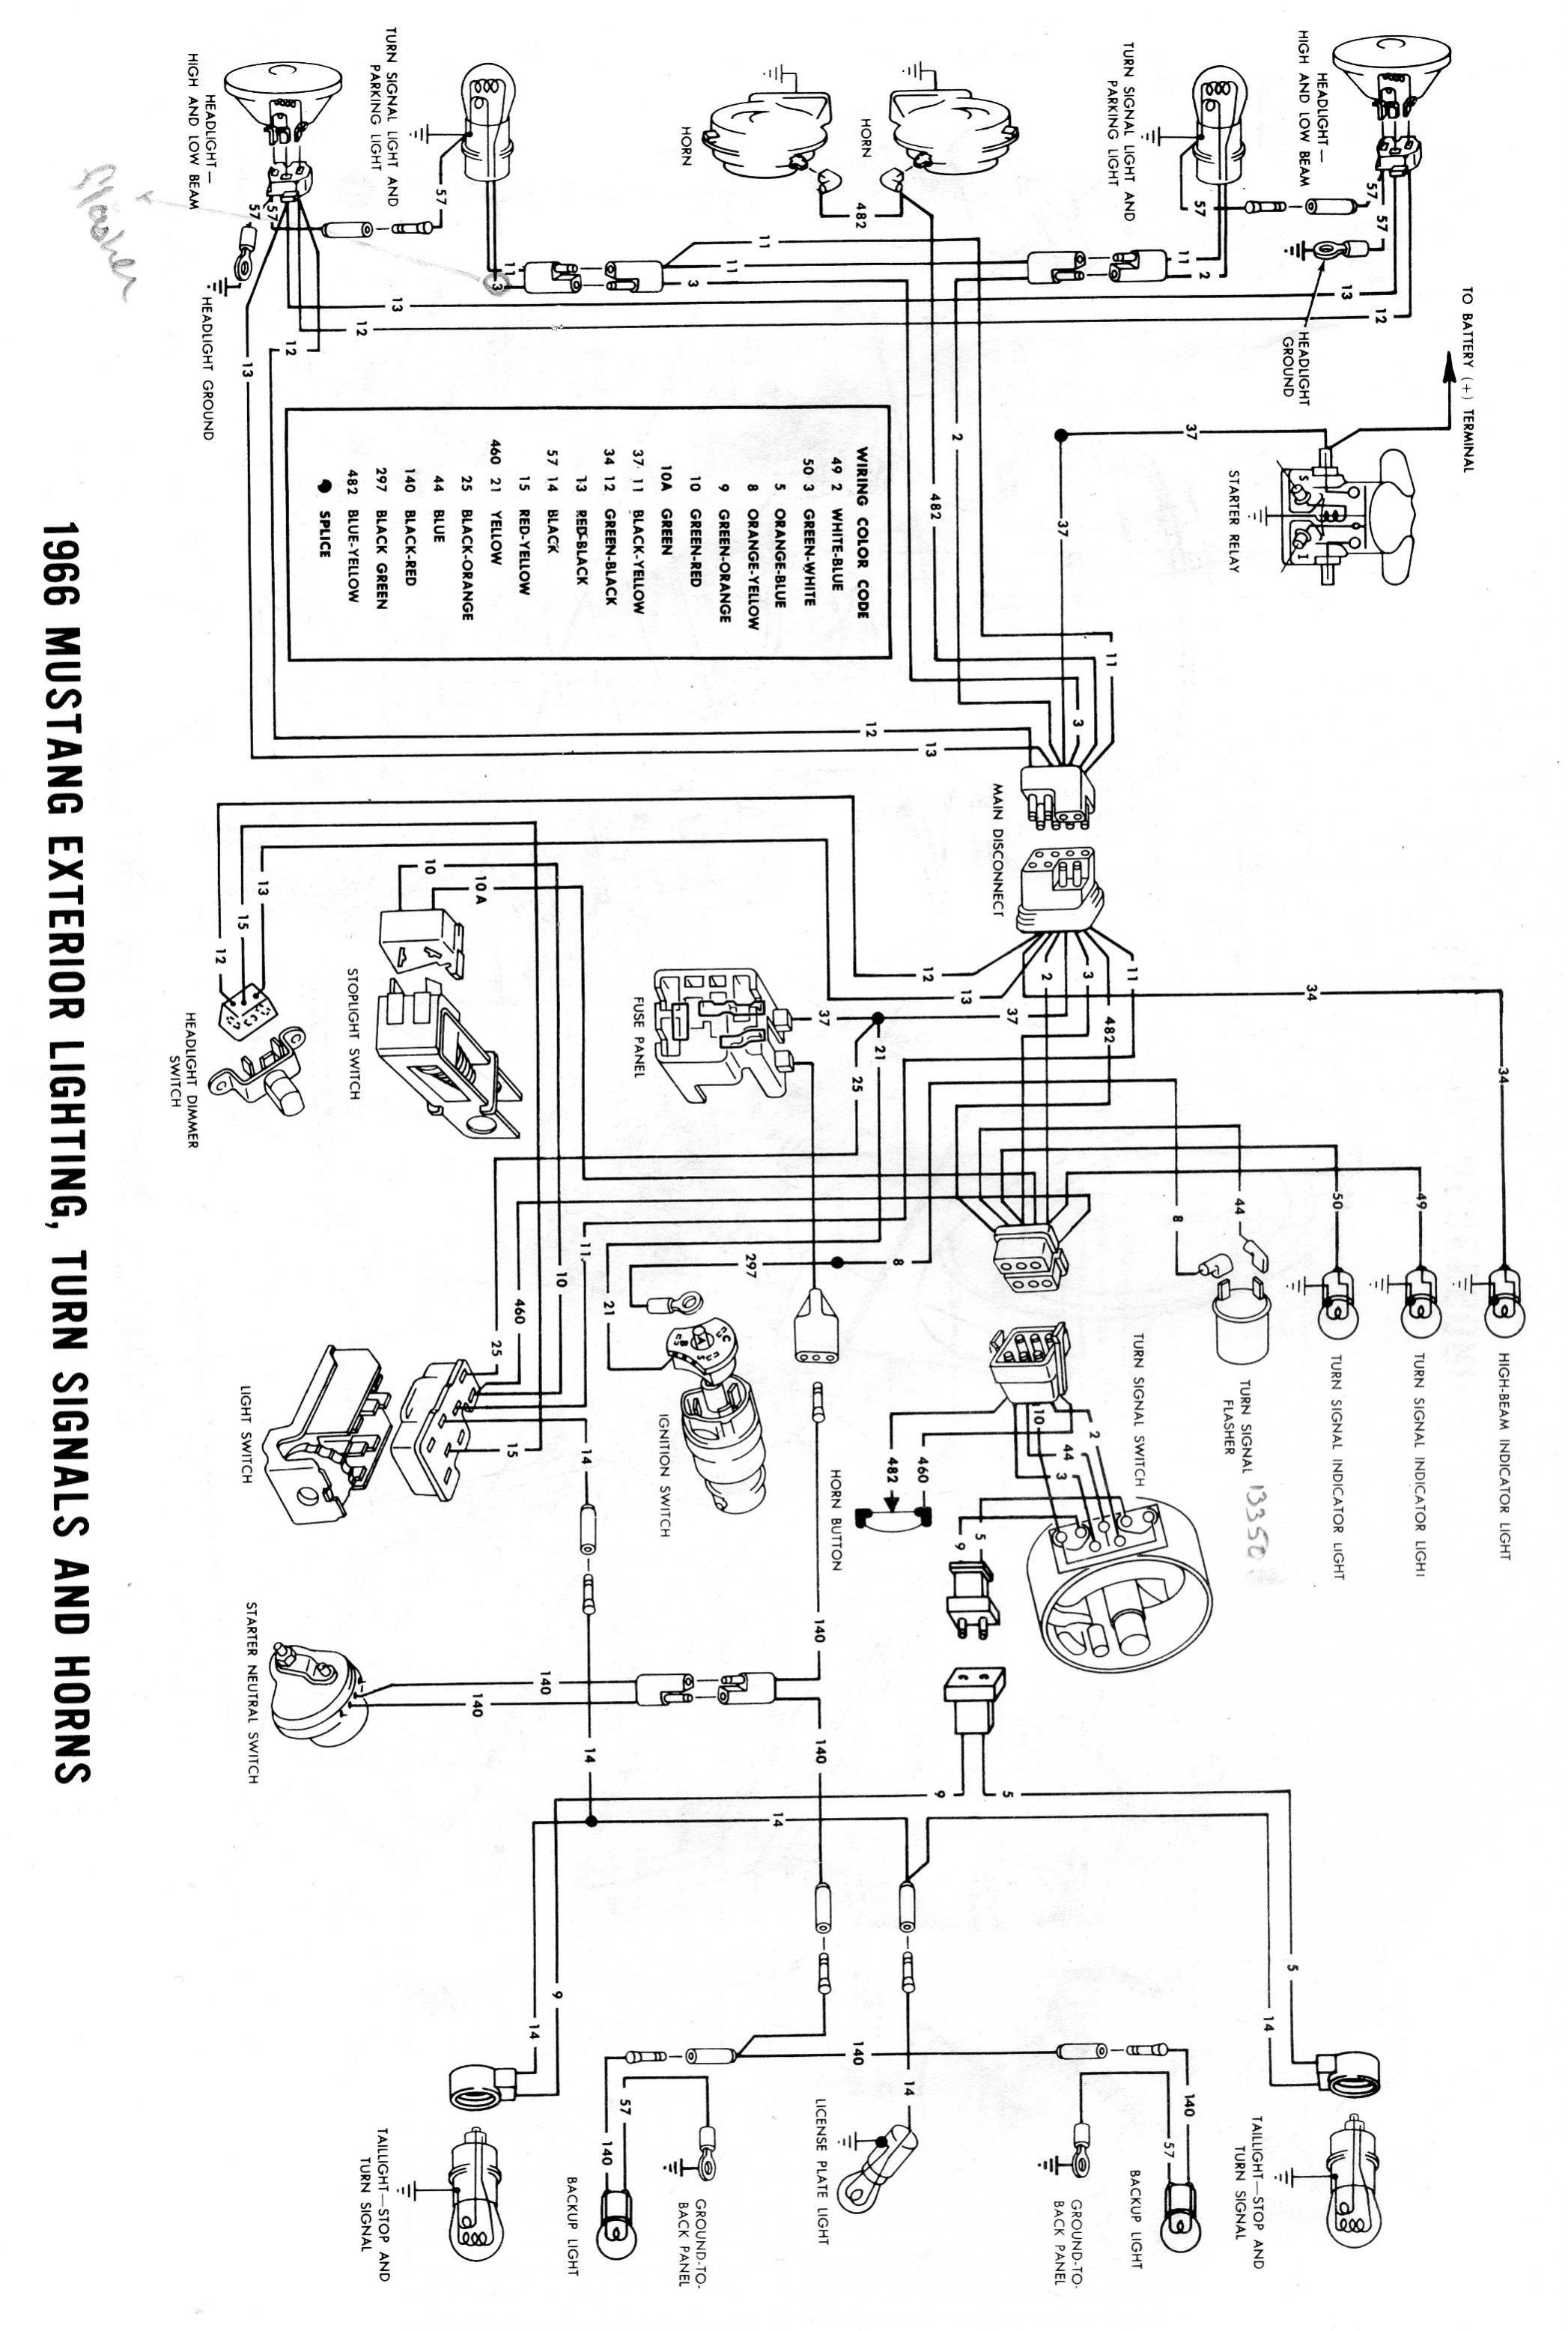 Courtesy Light Wiring Diagram For 1966 Mustang Library Dodge Ram Turn Signal 1973 Ford Product Diagrams U2022 Truck